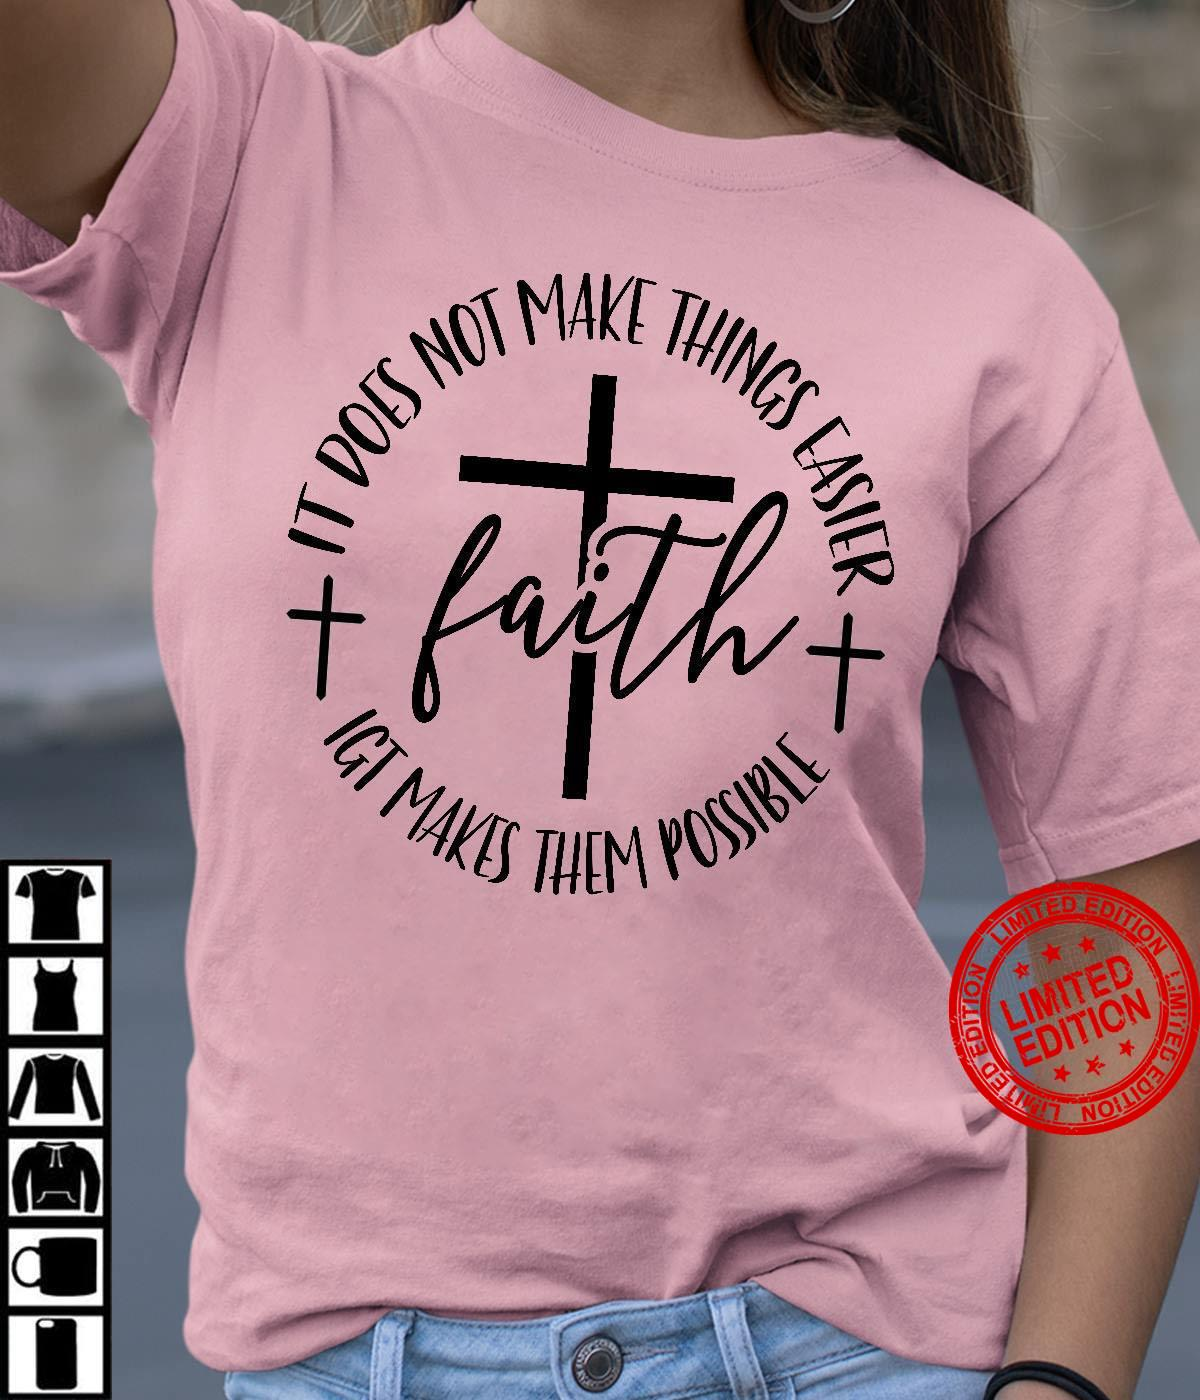 It Does Not Make Things Easier Faith Igt Makes Them Possible Shirt